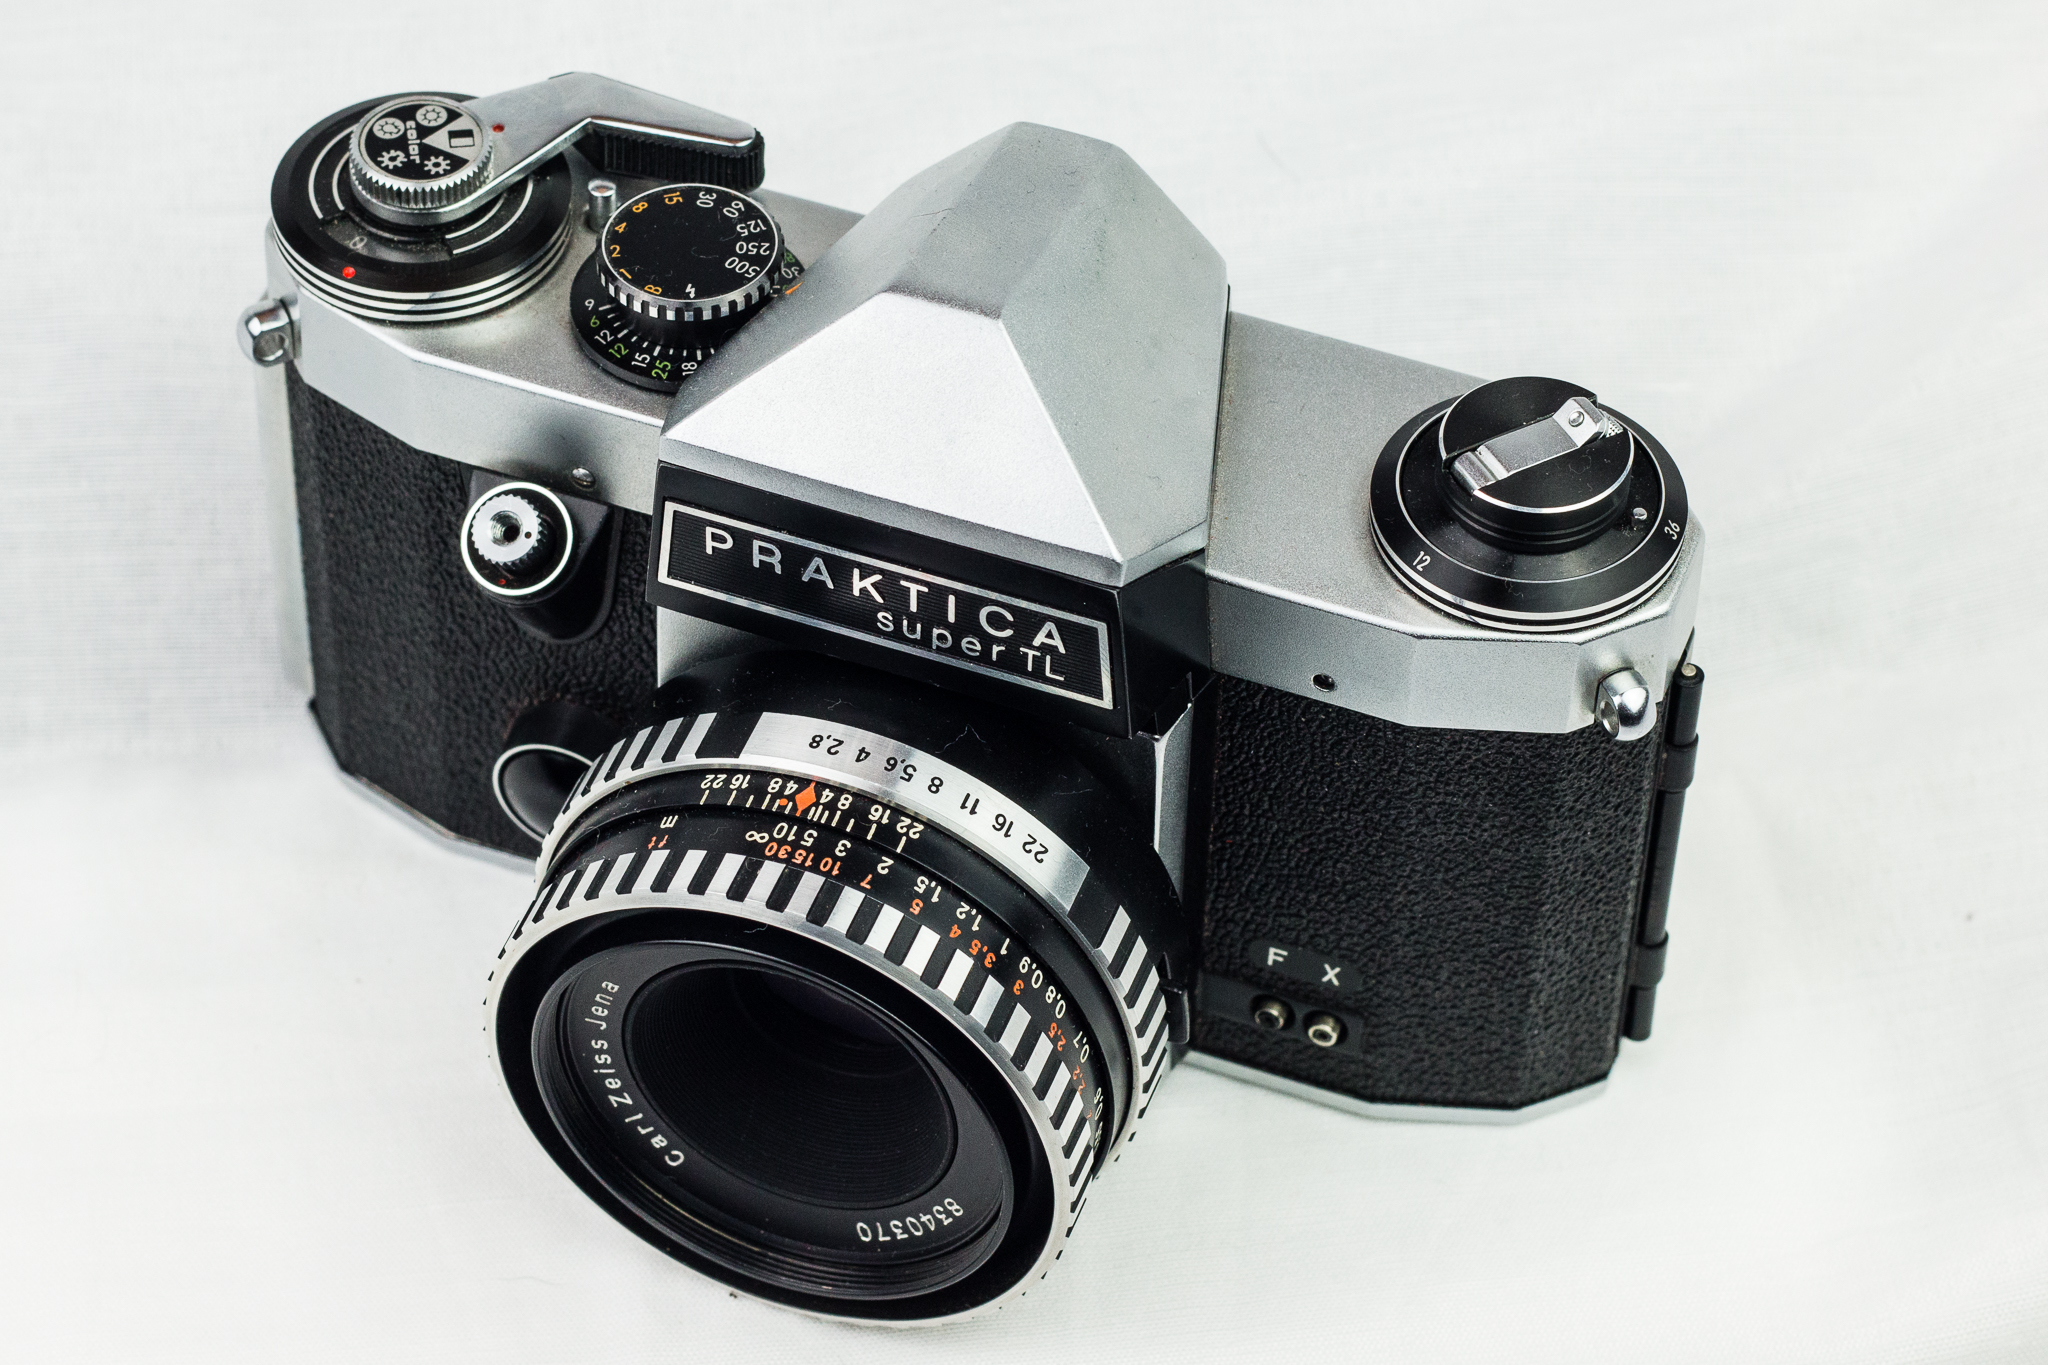 Praktica super tl serialforeigner photo